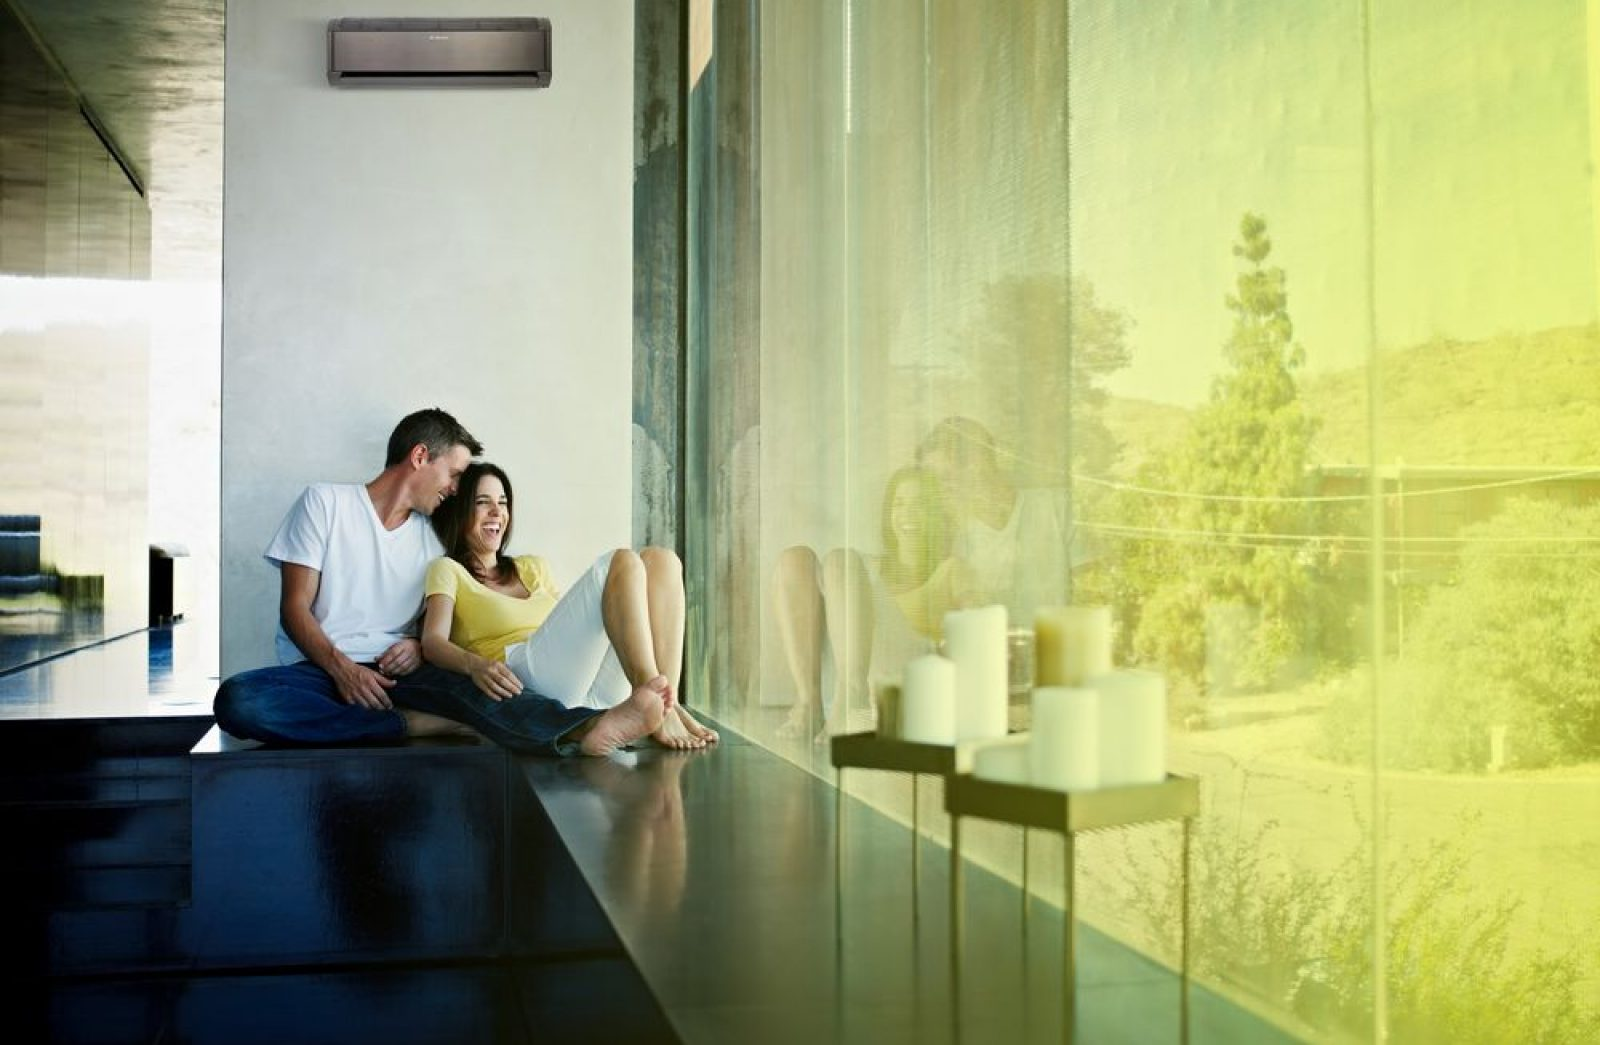 Husband and wife sitting near window of home laughing